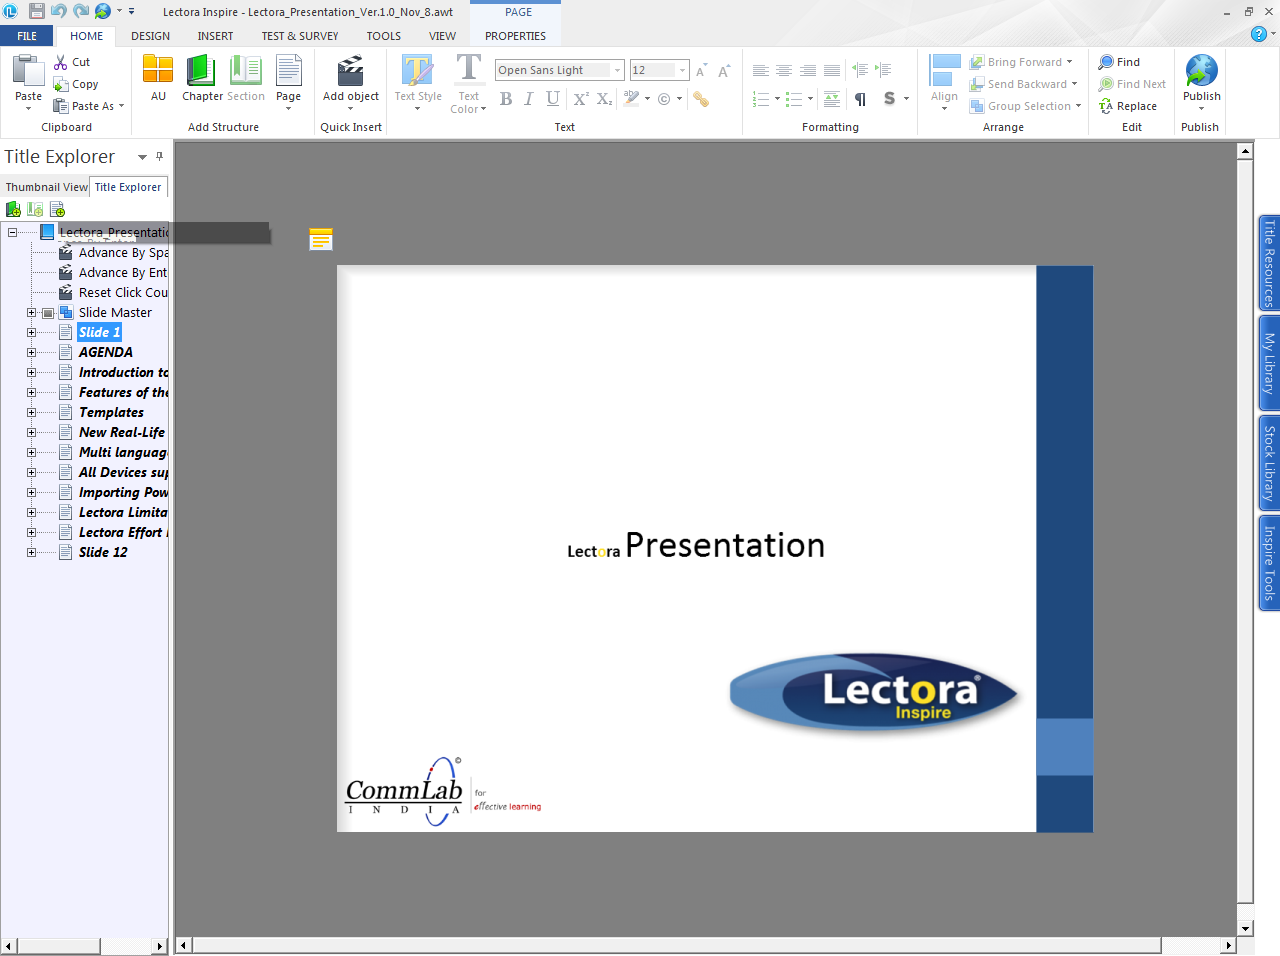 Powerpoint slides imported into lectora